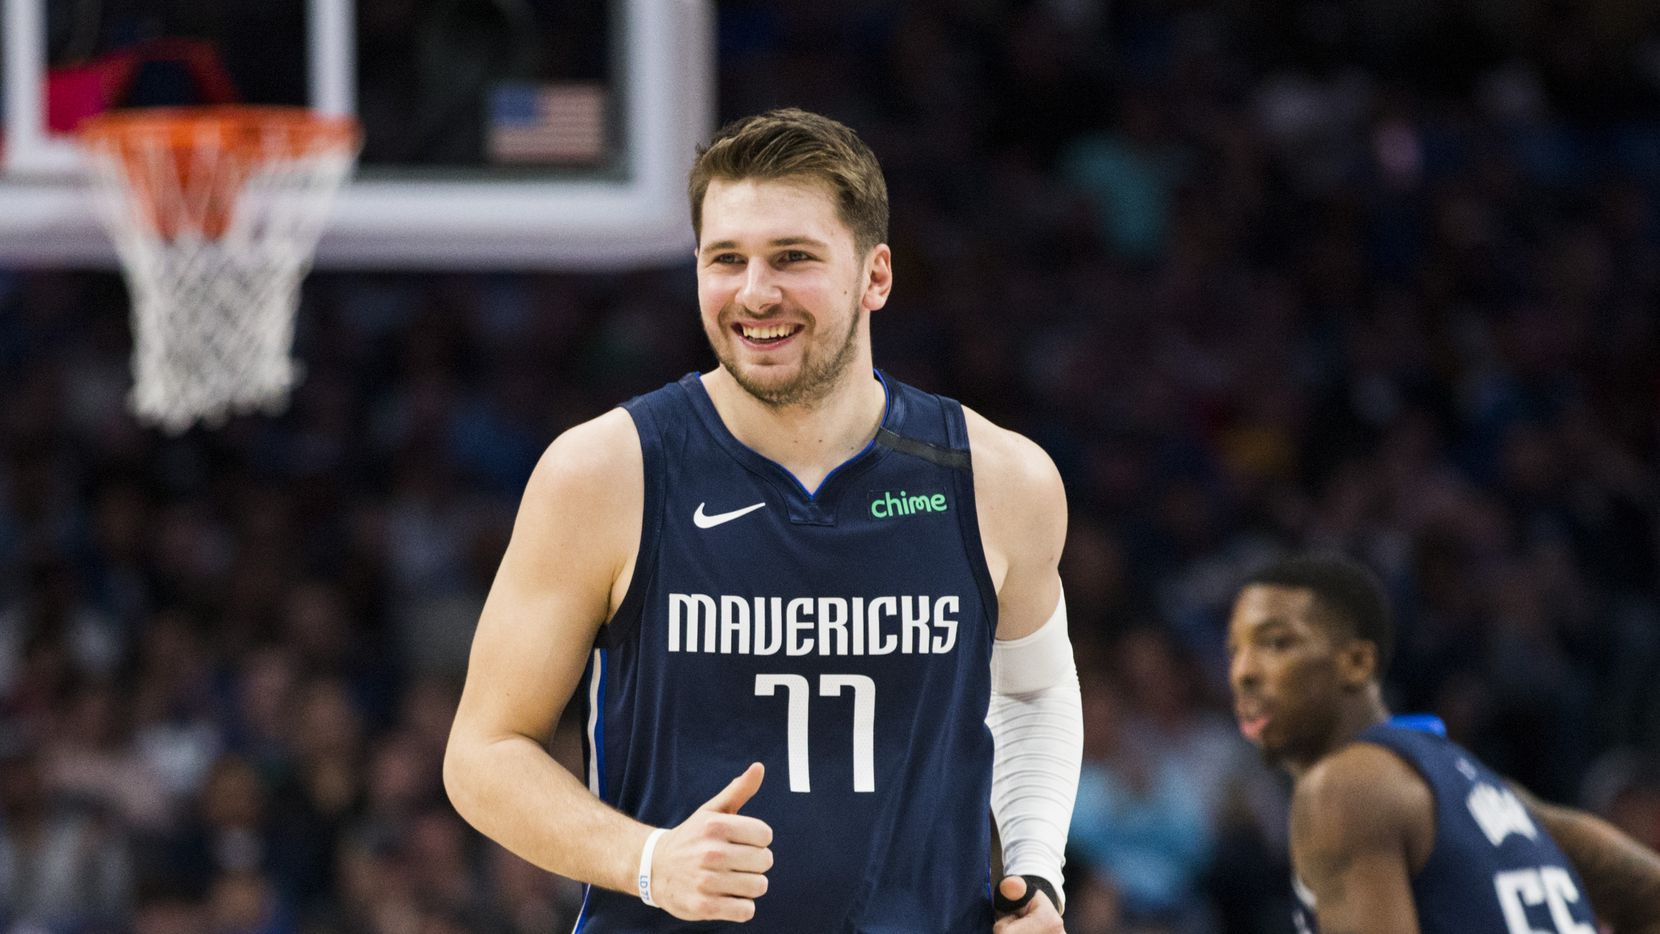 FILE - Mavericks guard Luka Doncic (77) smiles during the first quarter of a game against the Indiana Pacers on Sunday, March 8, 2020, at American Airlines Center in Dallas.